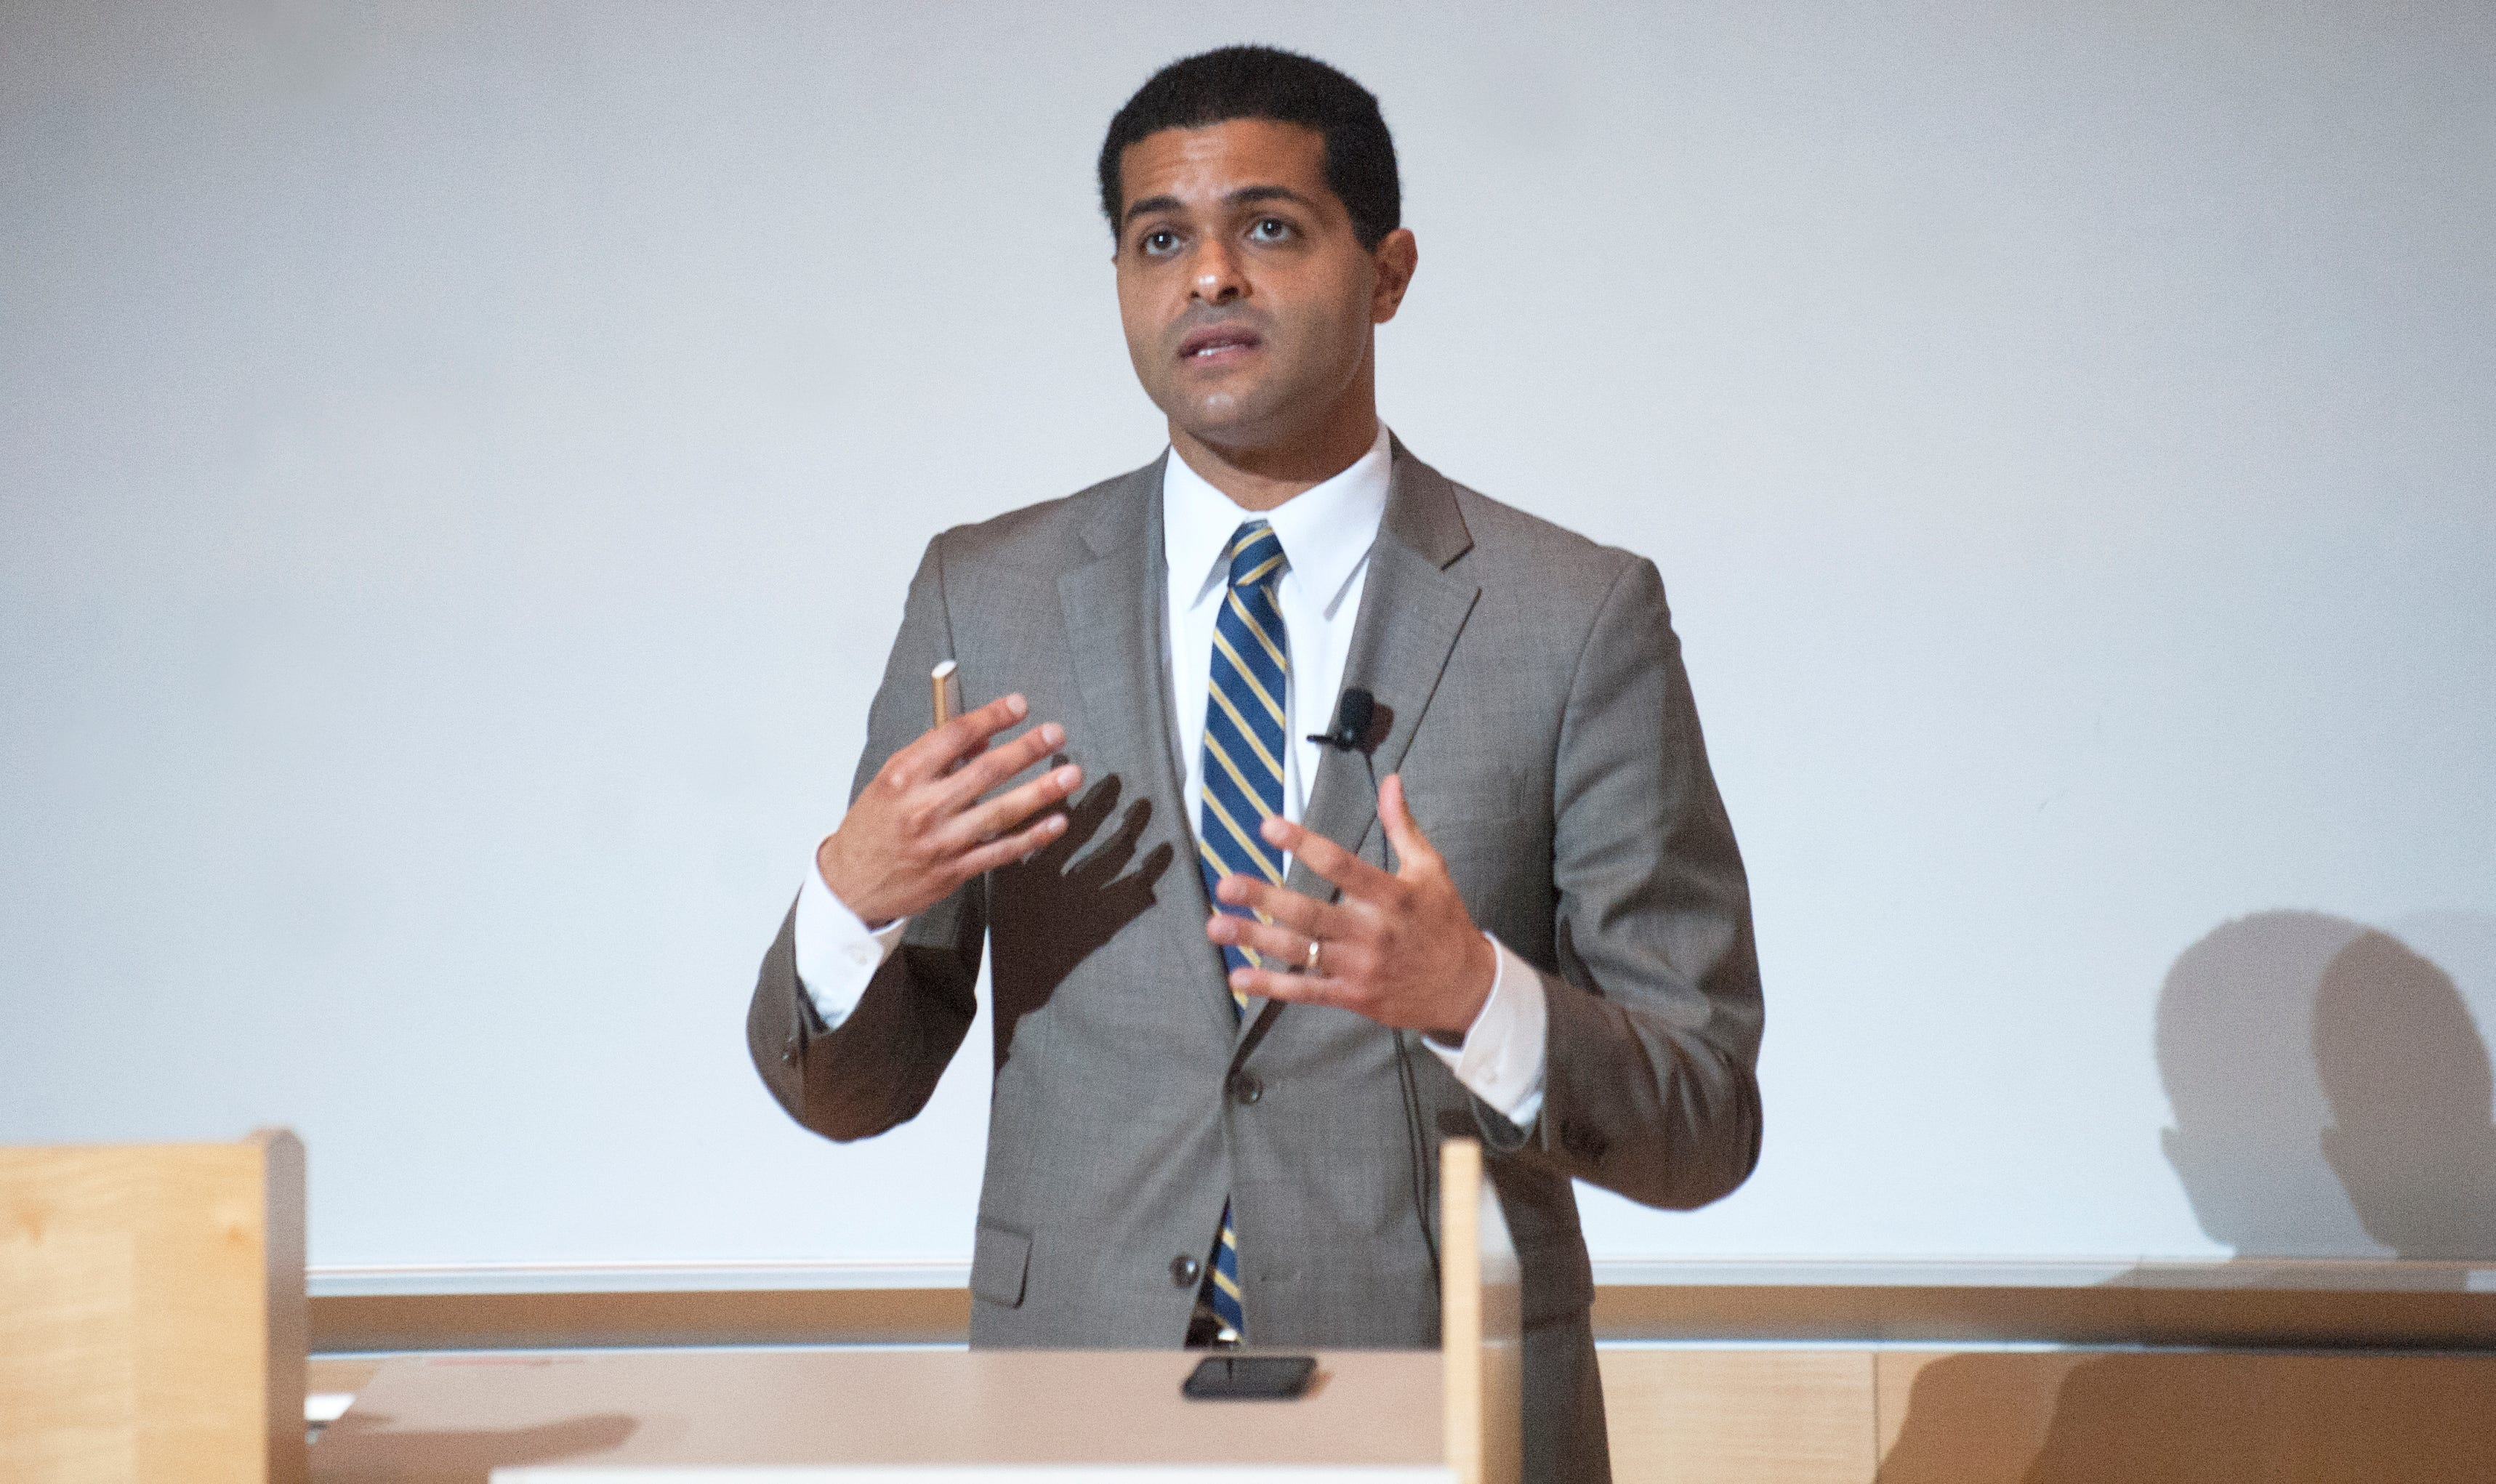 N.J. Department of Health Commissioner Dr. Shereef Elnahal is shown in this file photo taken at Cooper Medical School of Rowan University in Camden on Thursday, Sept. 20, 2018.